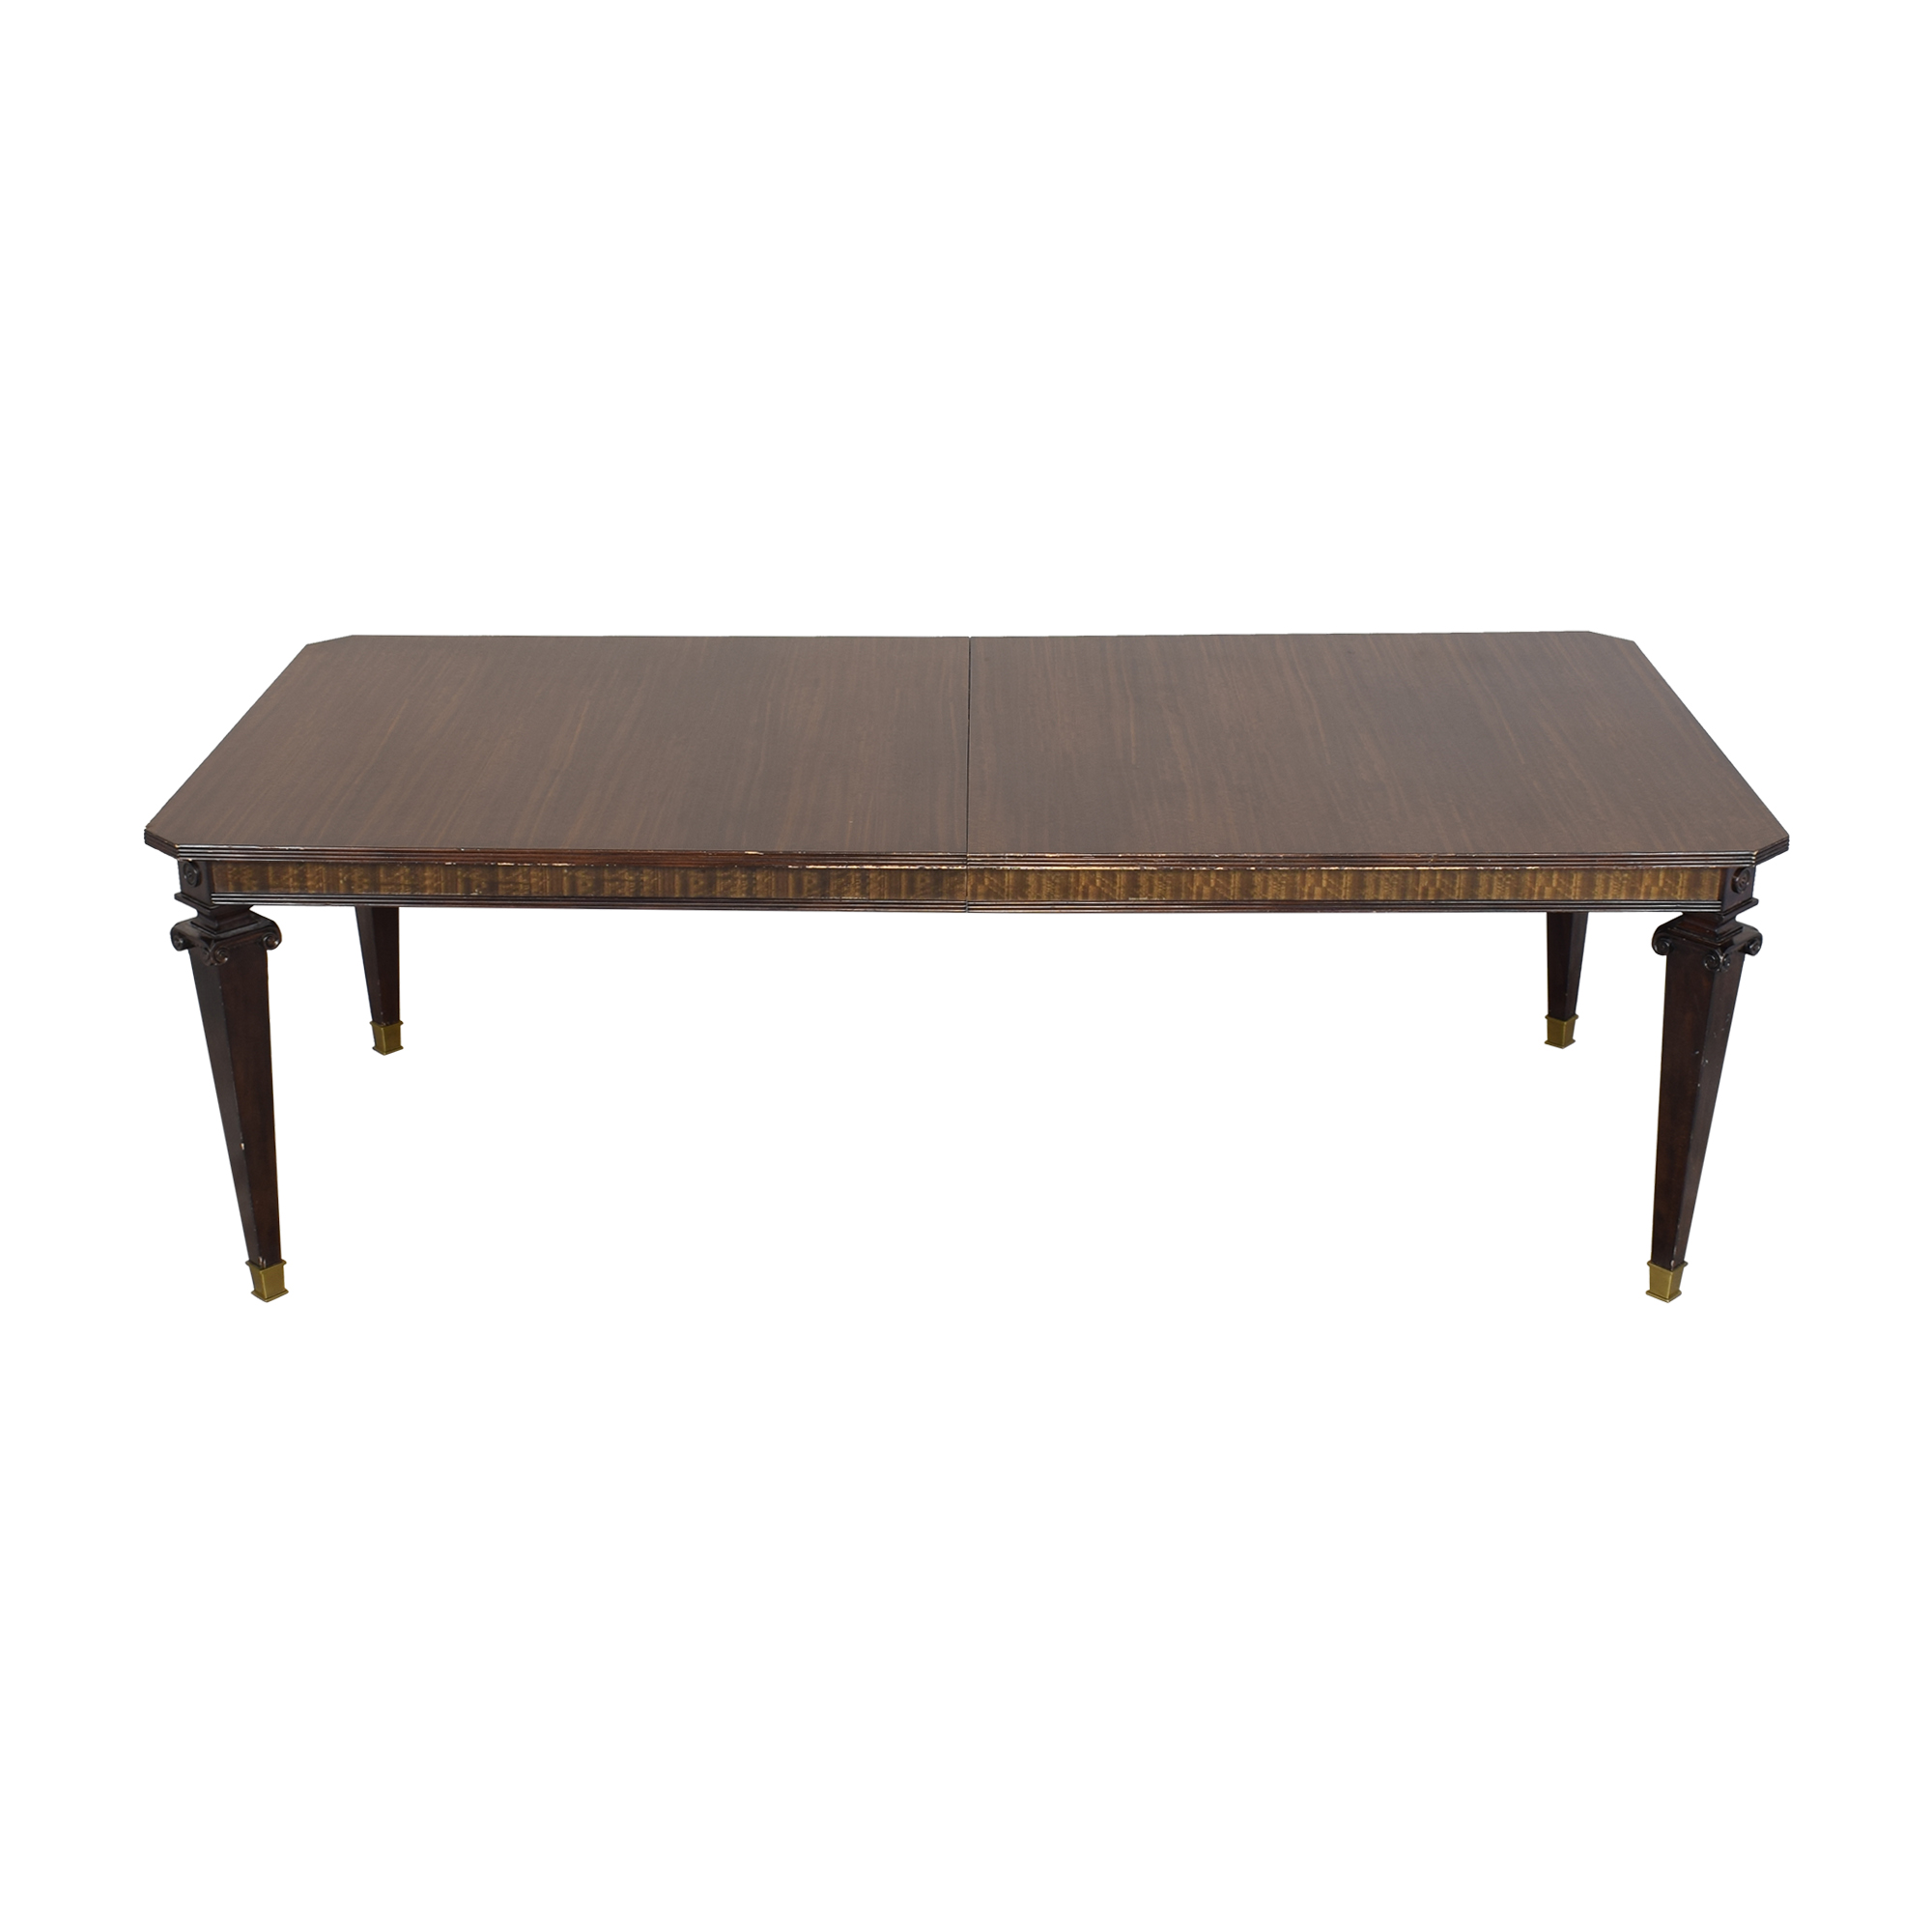 Theodore Alexander Theodore Alexander Extending Dining Table Dinner Tables